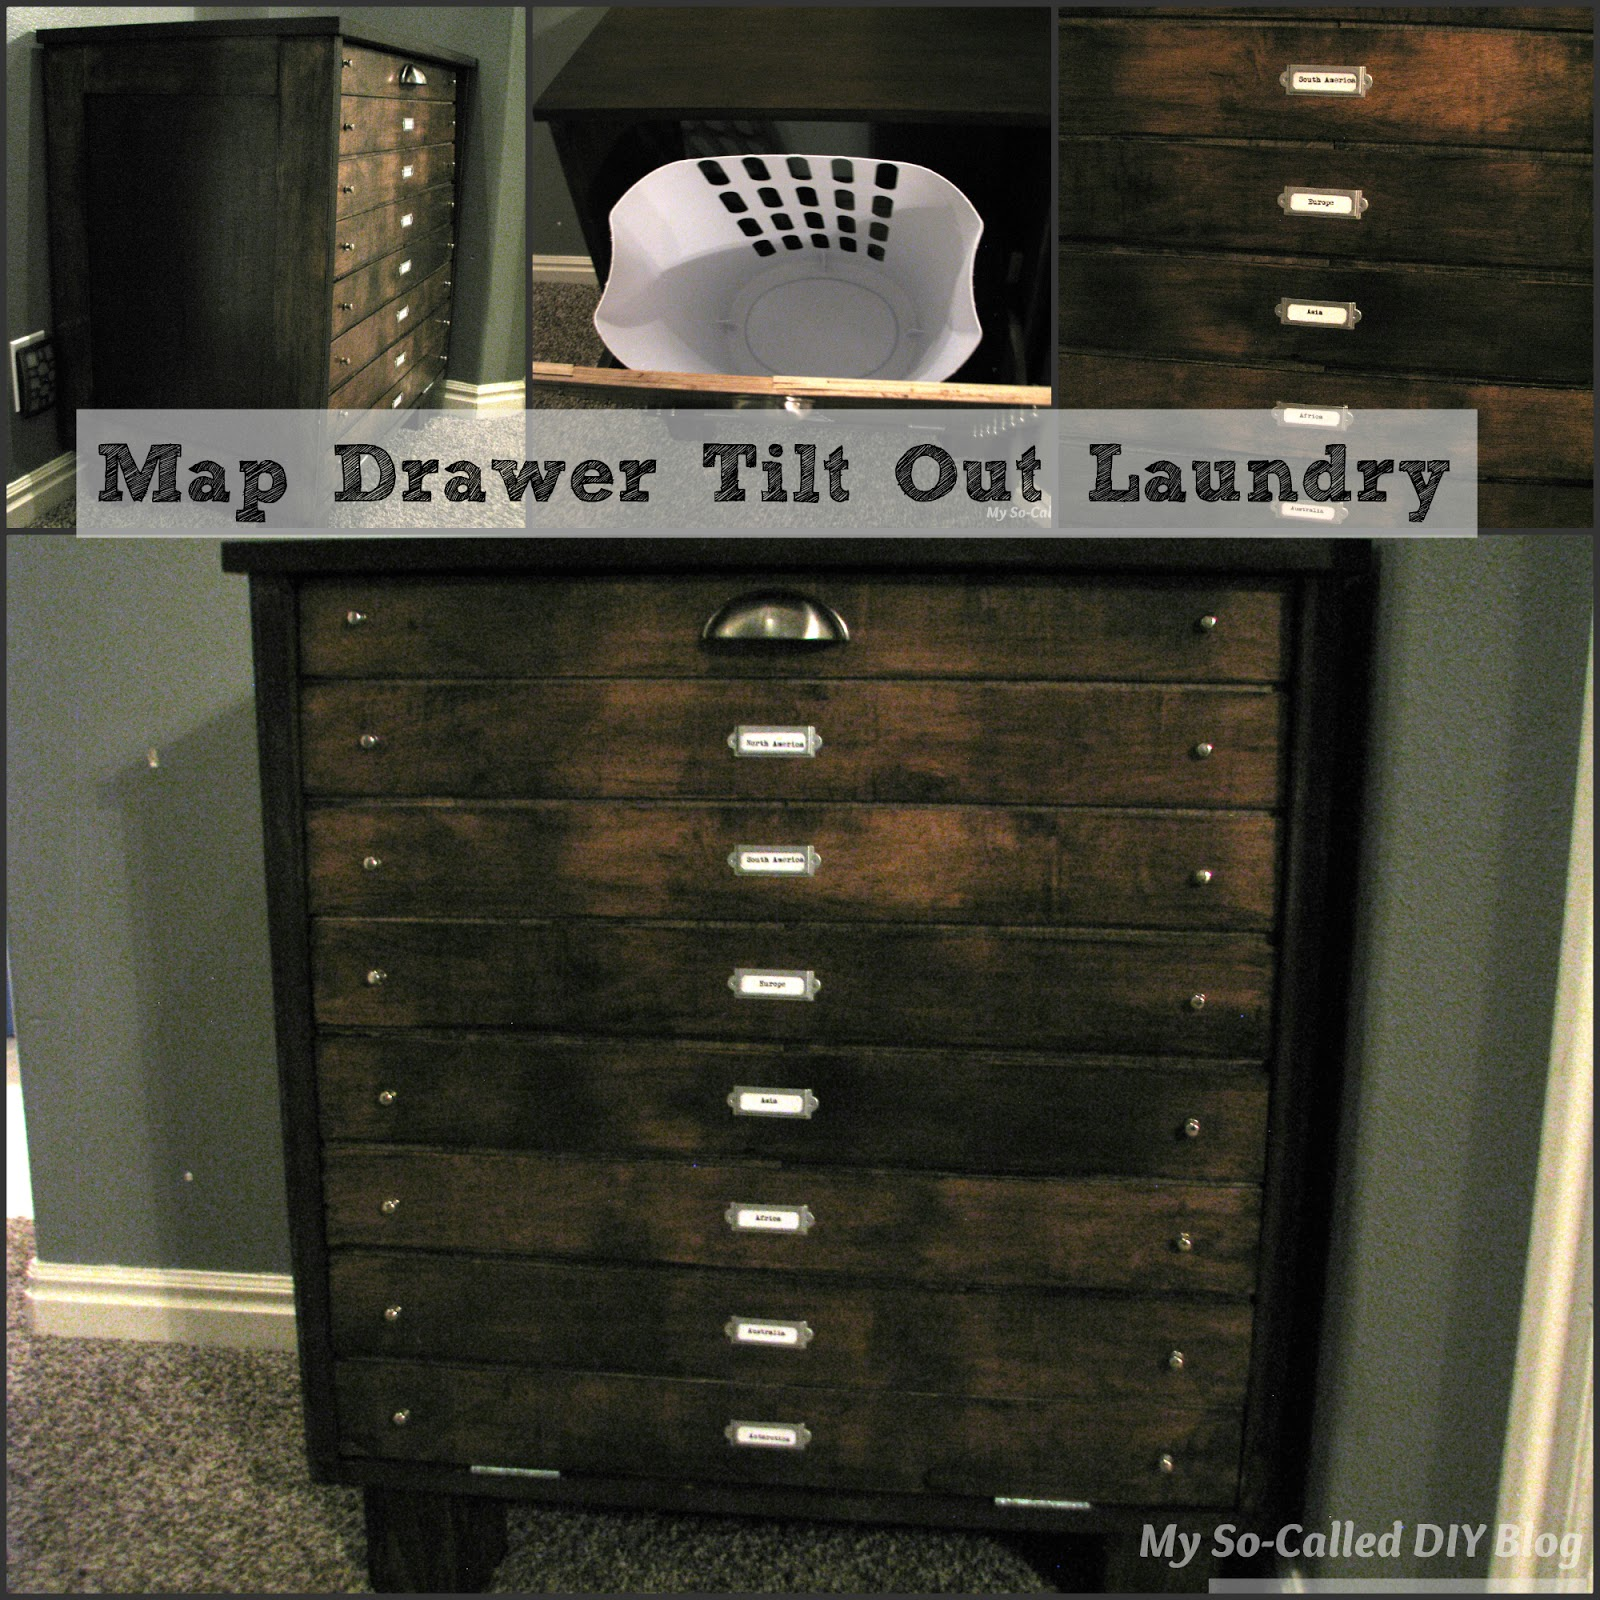 My So-Called DIY Blog: Map Drawer Tilt Out Laundry on map in india, map cambodia travel, map without labels, map ne usa, map cabinets, map photography, map my route, map recipe, map fabric by the yard, map dressers, map cornwall uk, map collection, map niagara on the lake, map with mountains, map kashmir conflict, map baltimore md, map drawearchitect, map your neighborhood, map facebook covers, map with states,